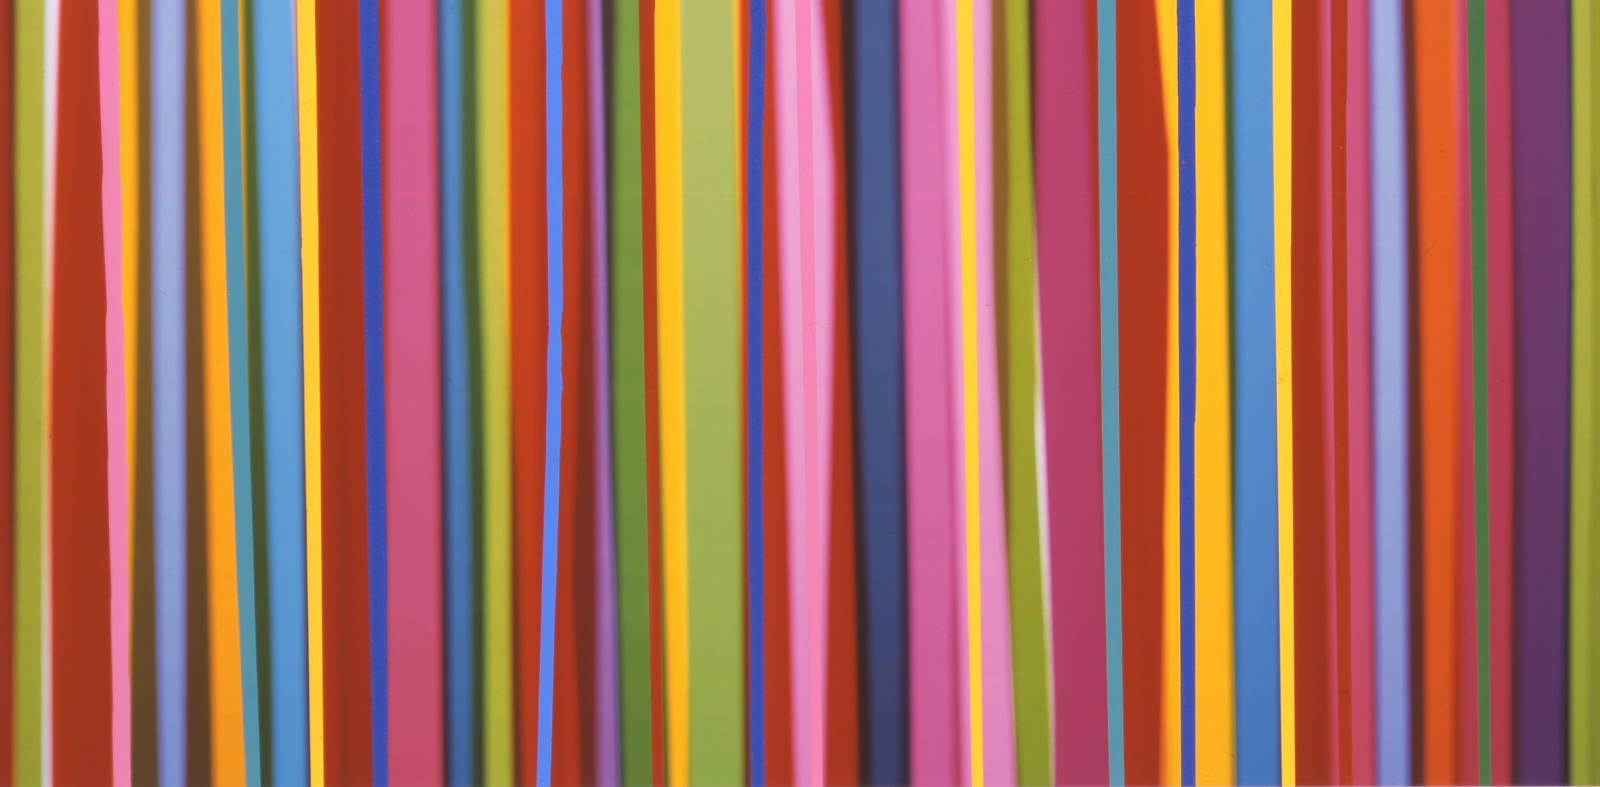 Rob and Nick Carter - RN408, Vertical Lines, Light and Paint XX, 2004 · © Copyright 2017